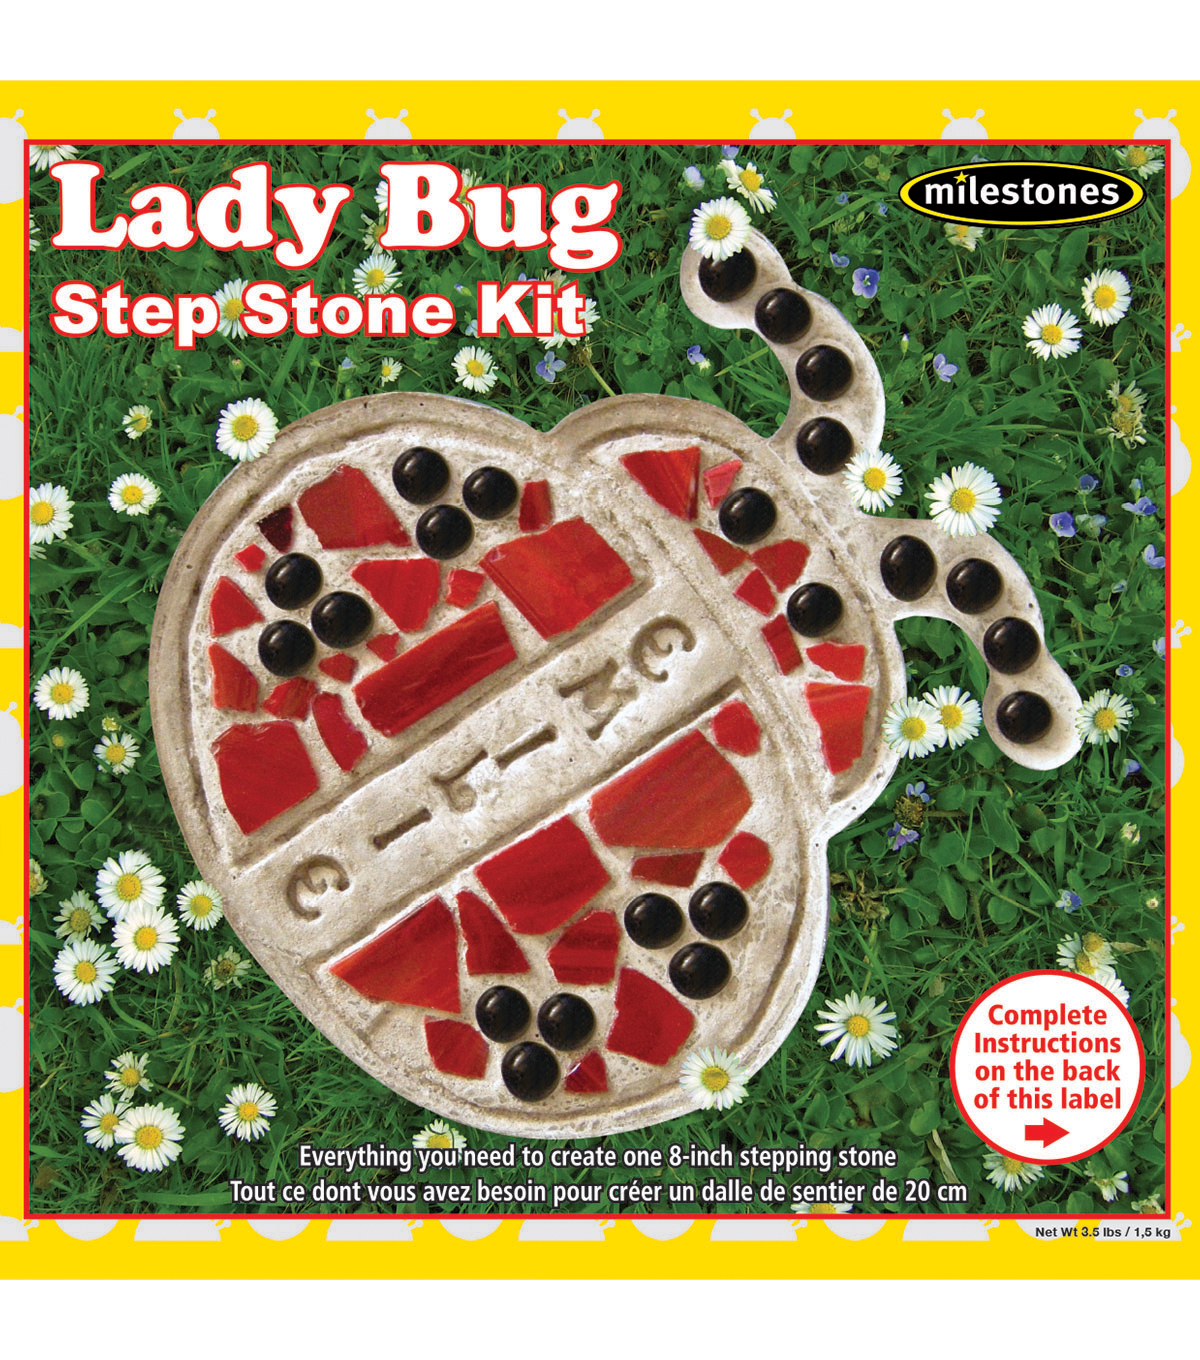 Milestones 8\u0027\u0027 Mosaic Stepping Stone Kit-Lady Bug